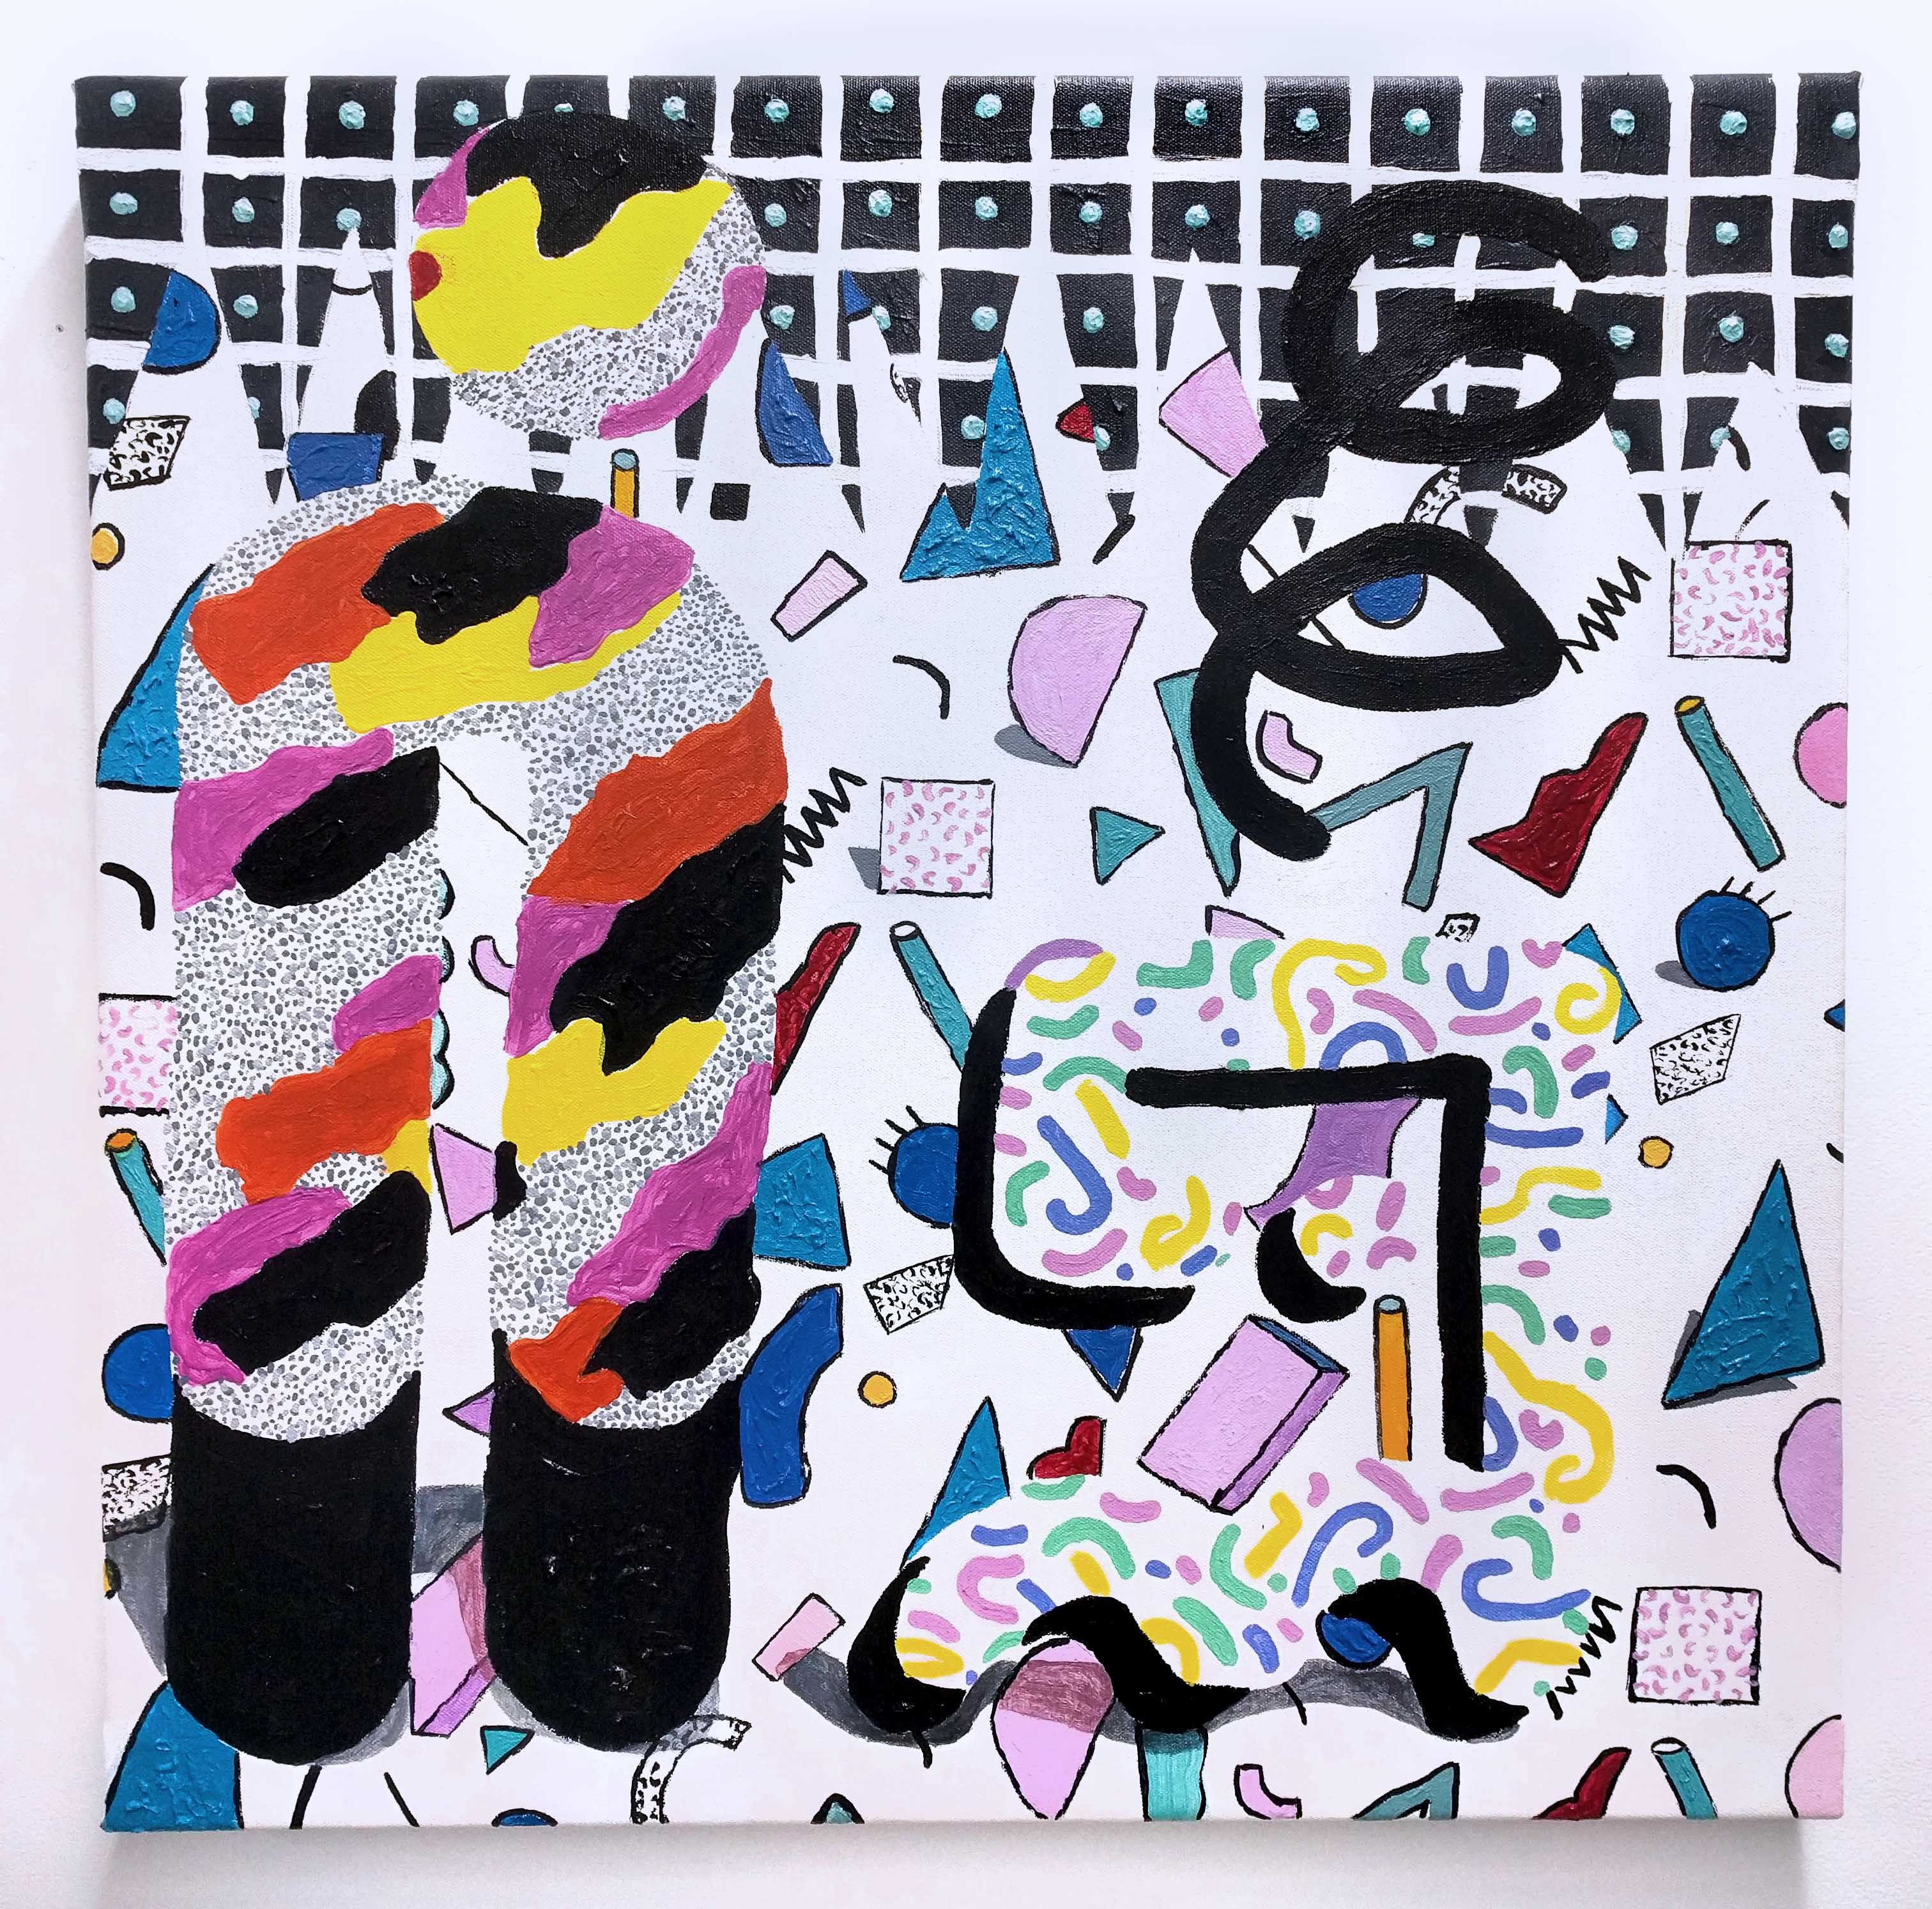 An acrylic painting of a tall abstract figure and a short squiggle figure. Each are made of colorful patterns